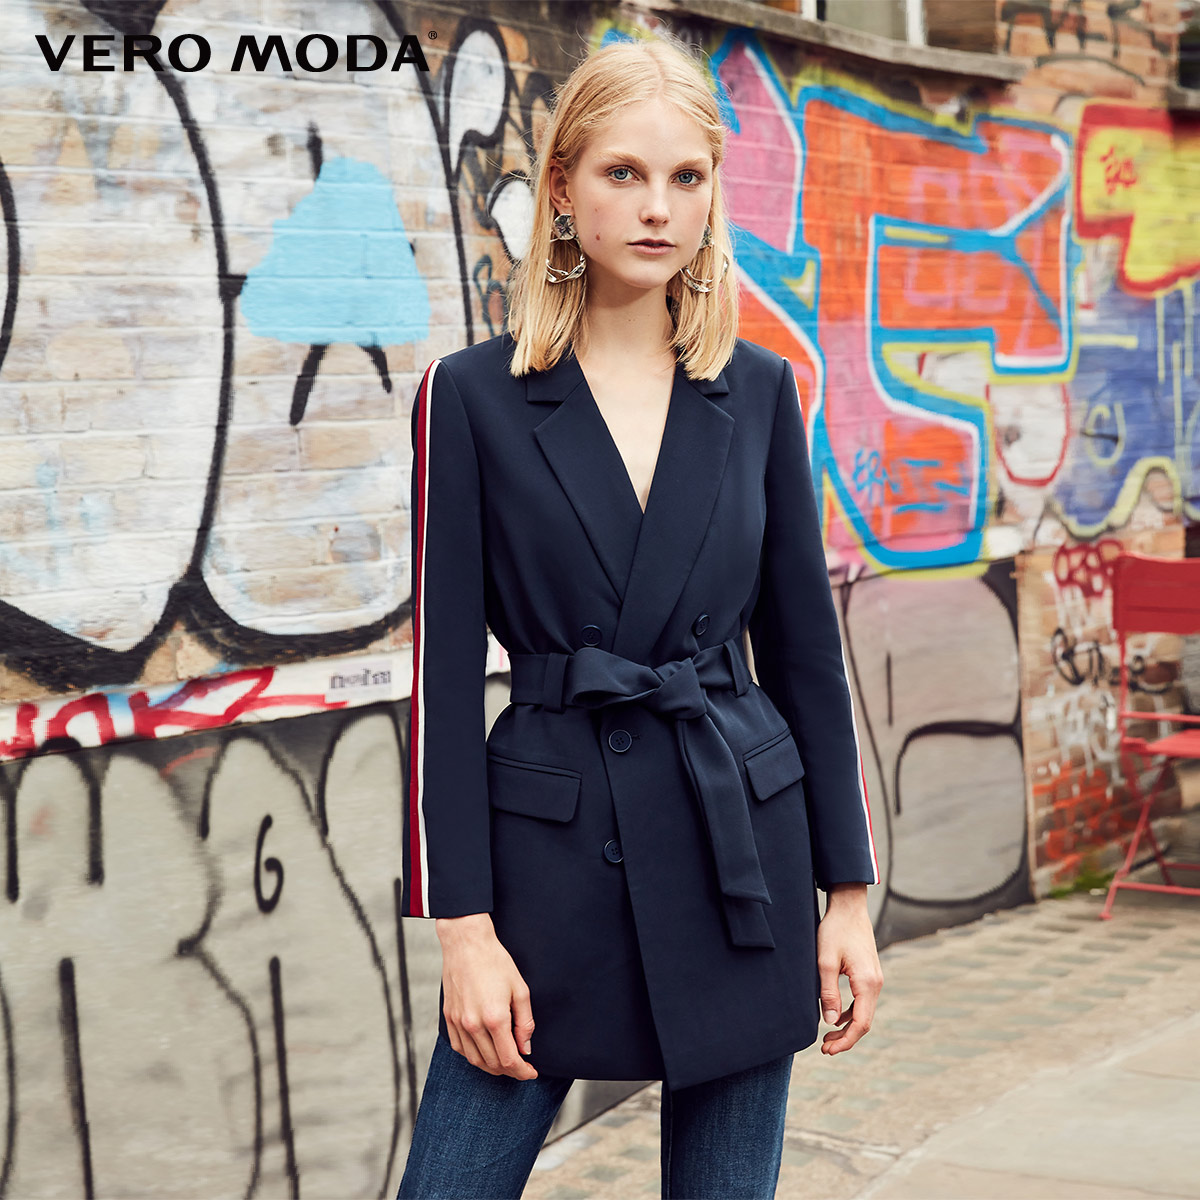 Vero Moda 2019 New Arrivals Striped Splice Decorative Waist Belt Blazer | 318308534